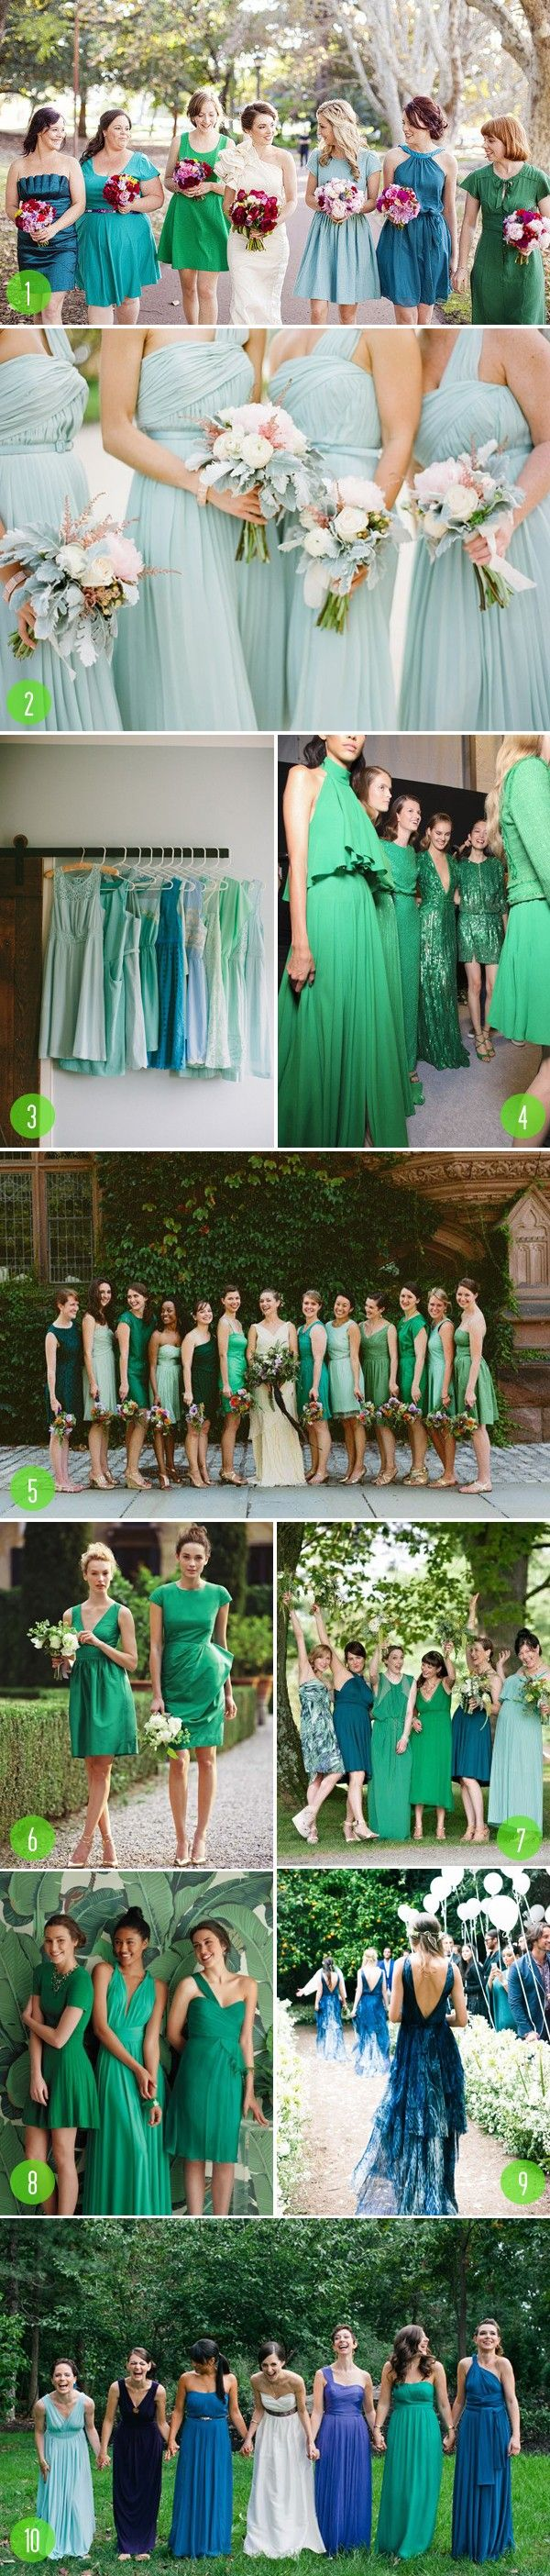 55 best green themed weddings images on pinterest bridal dresses top 10 cool colored bridesmaids dresses ombrellifo Image collections